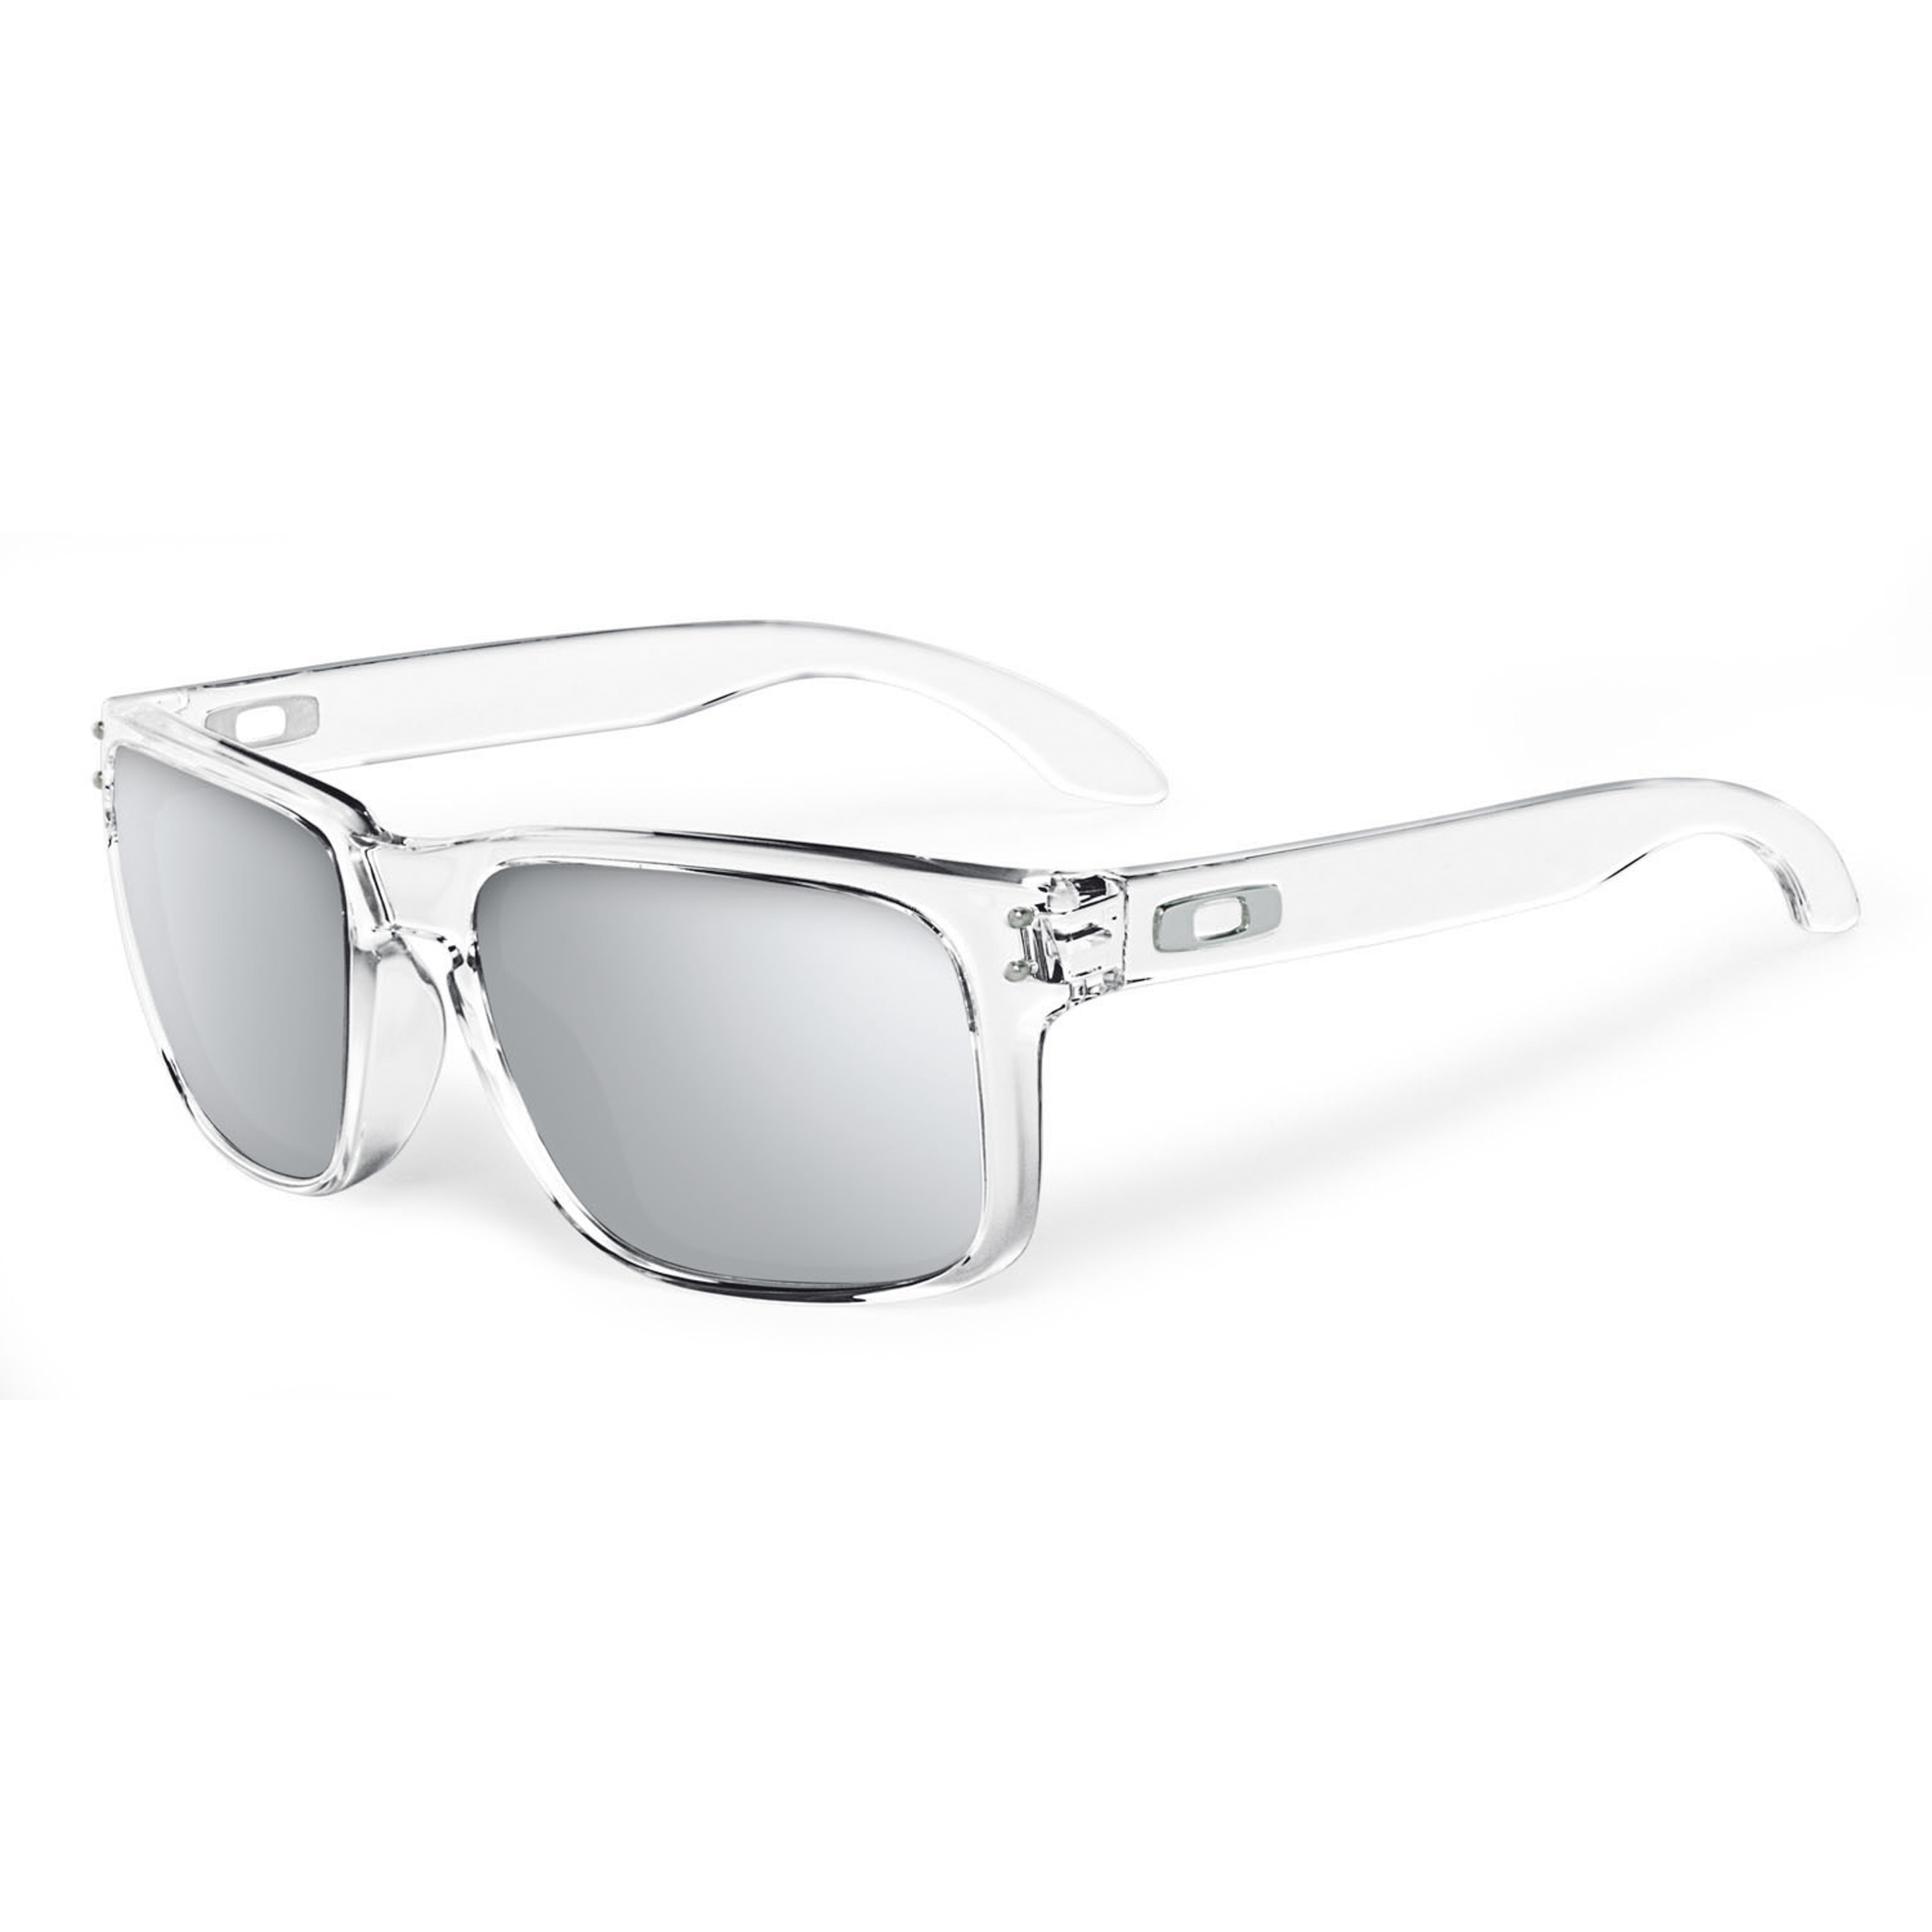 Oakley Holbrook Sunglasses - Clear